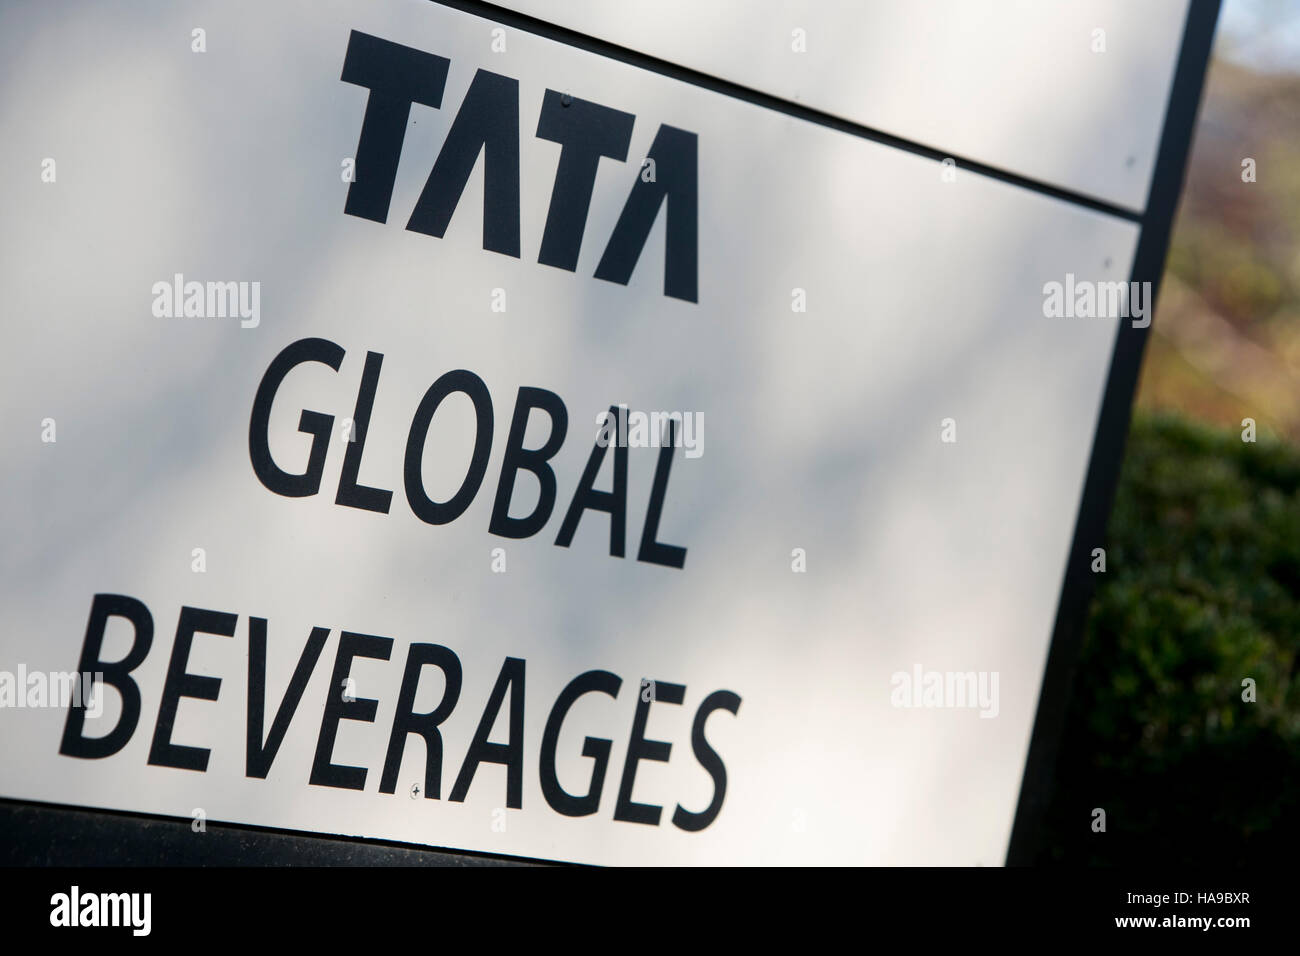 A logo sign outside of a facility occupied by Tata Global Beverages in Montvale, New Jersey on November 5, 2016. - Stock Image